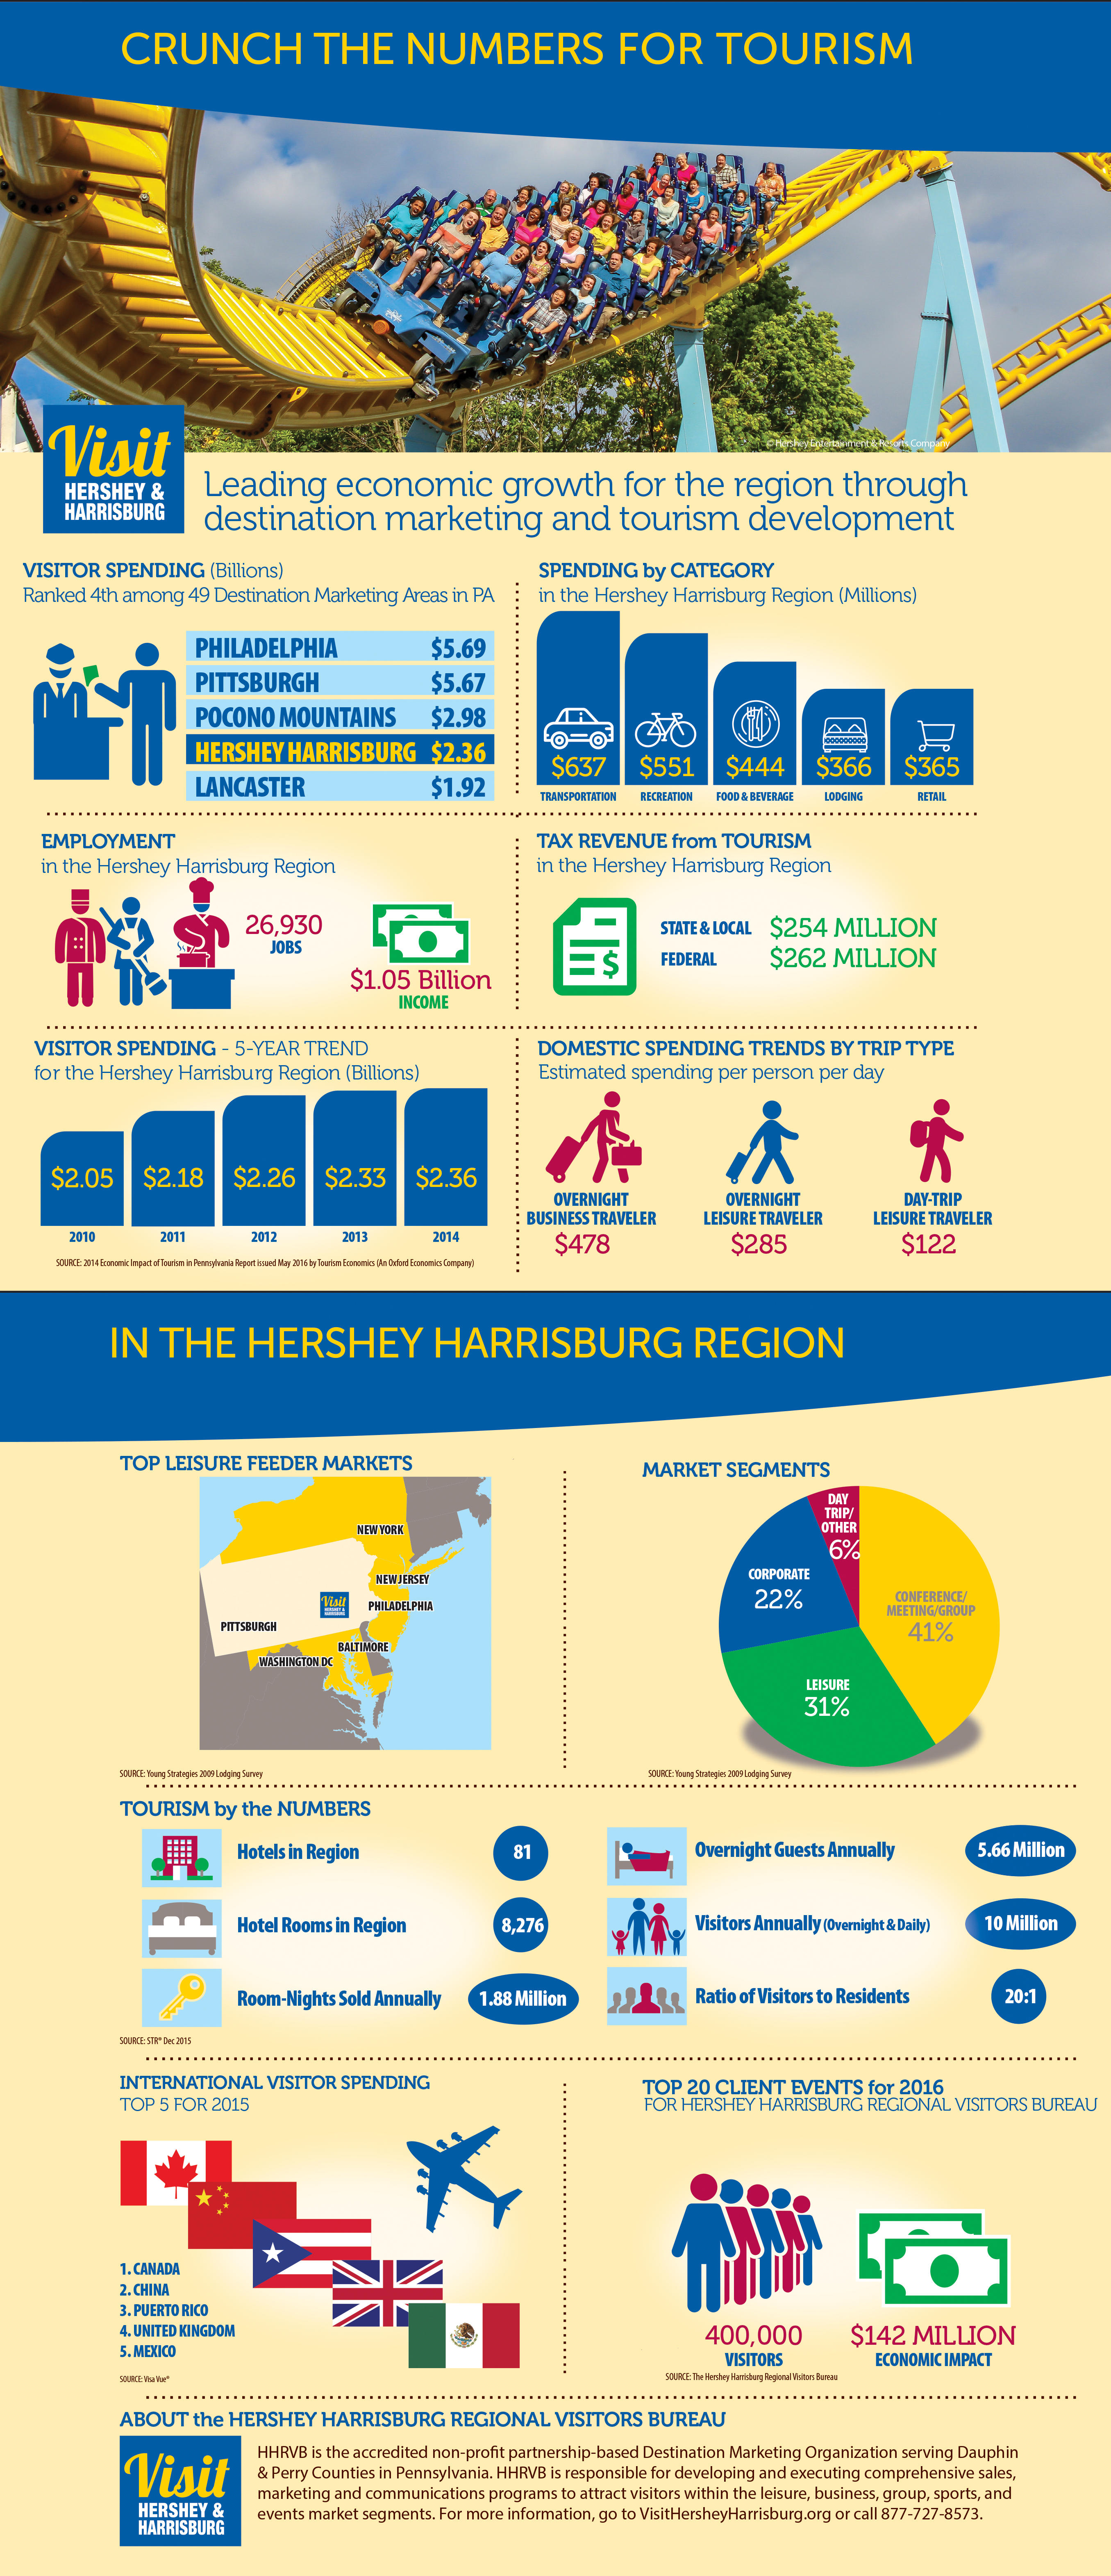 Crunch the numbers for tourism